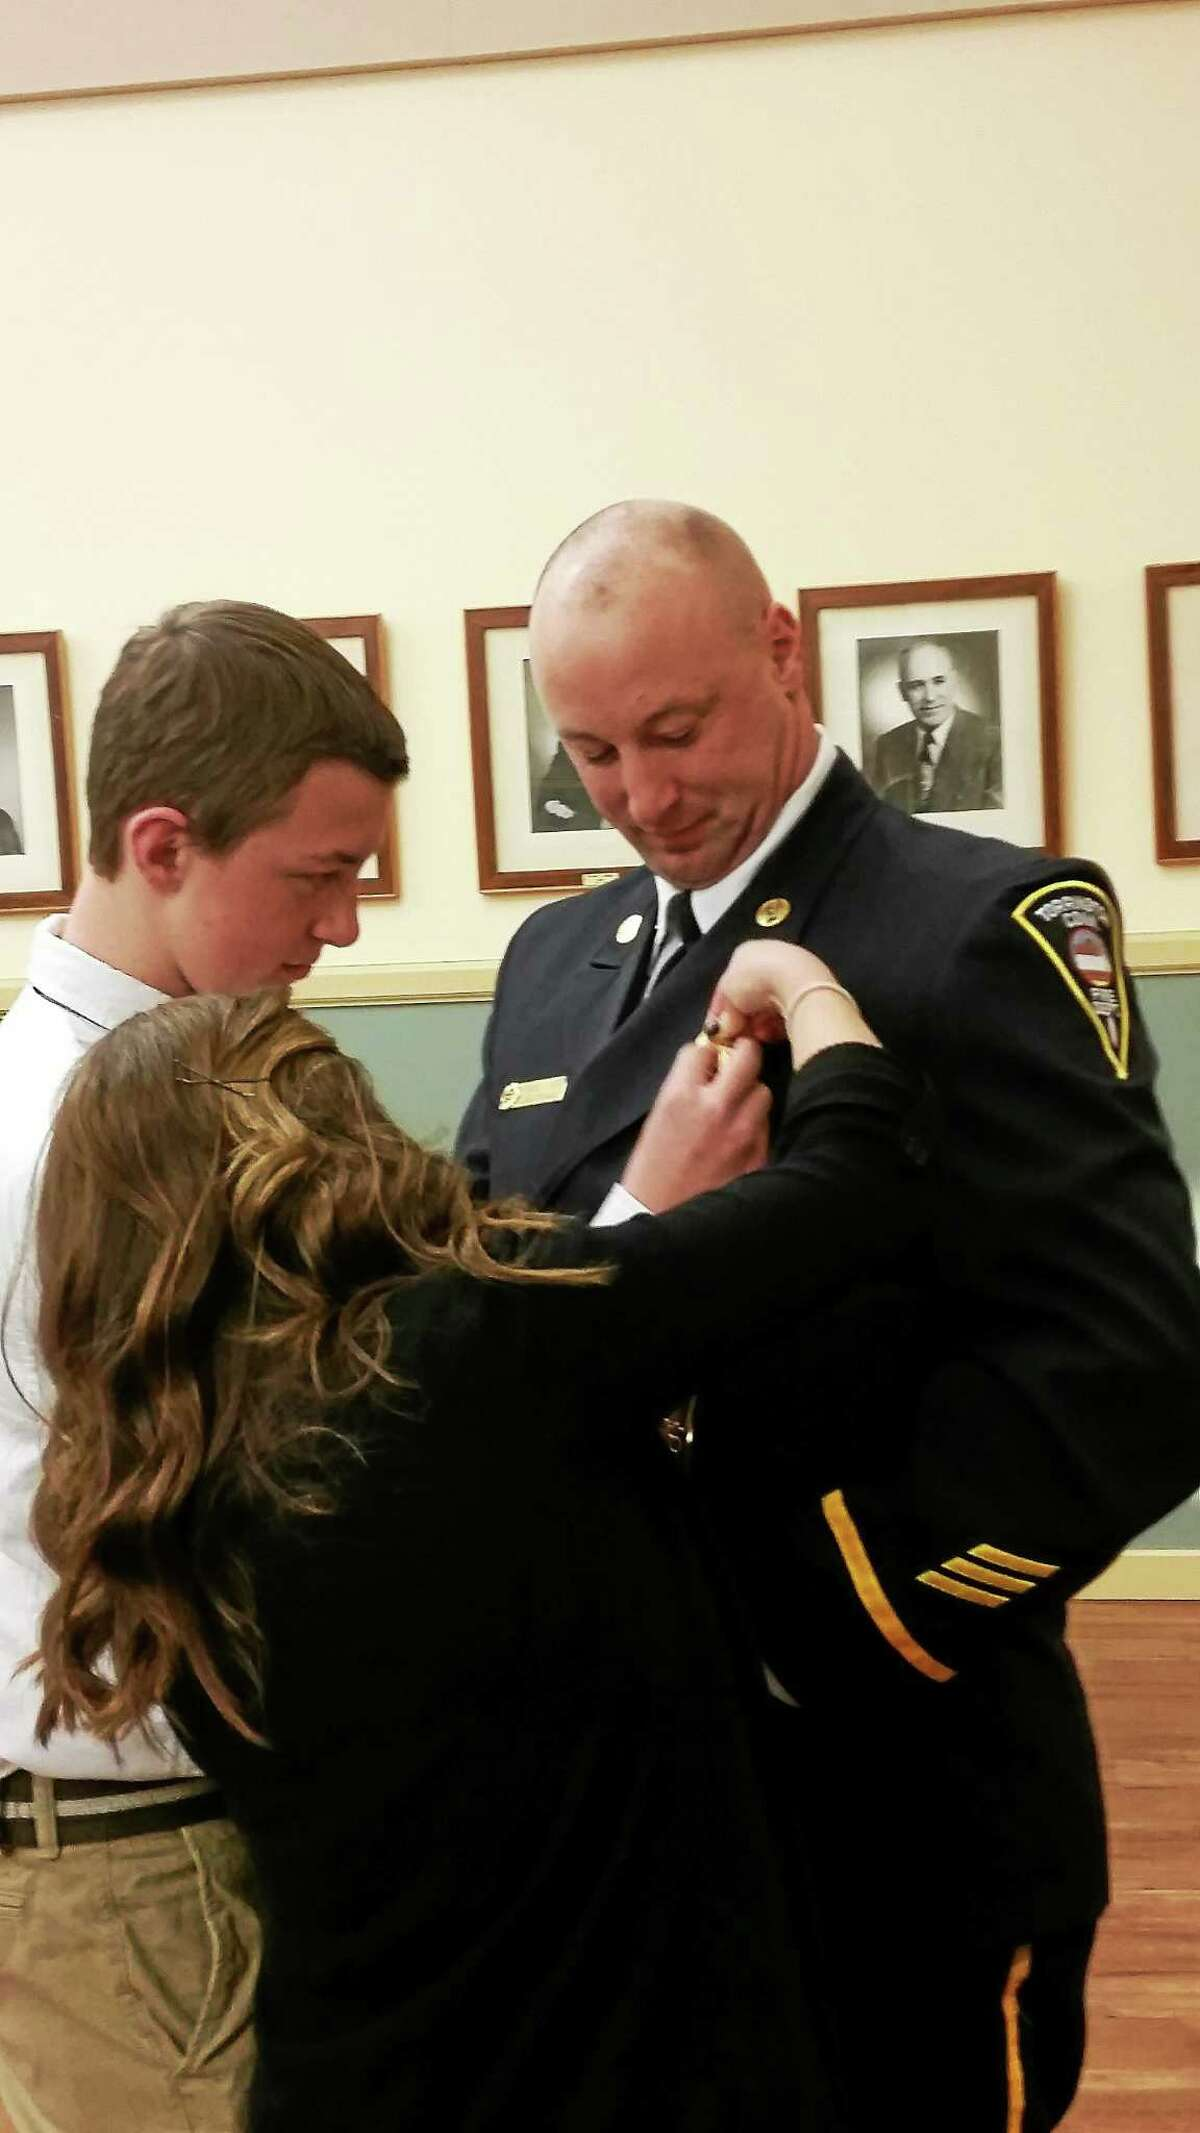 Fire Capt. David Casper receives his pin from members of his family Wednesday night at a Board of Public Safety meeting in Torrington.